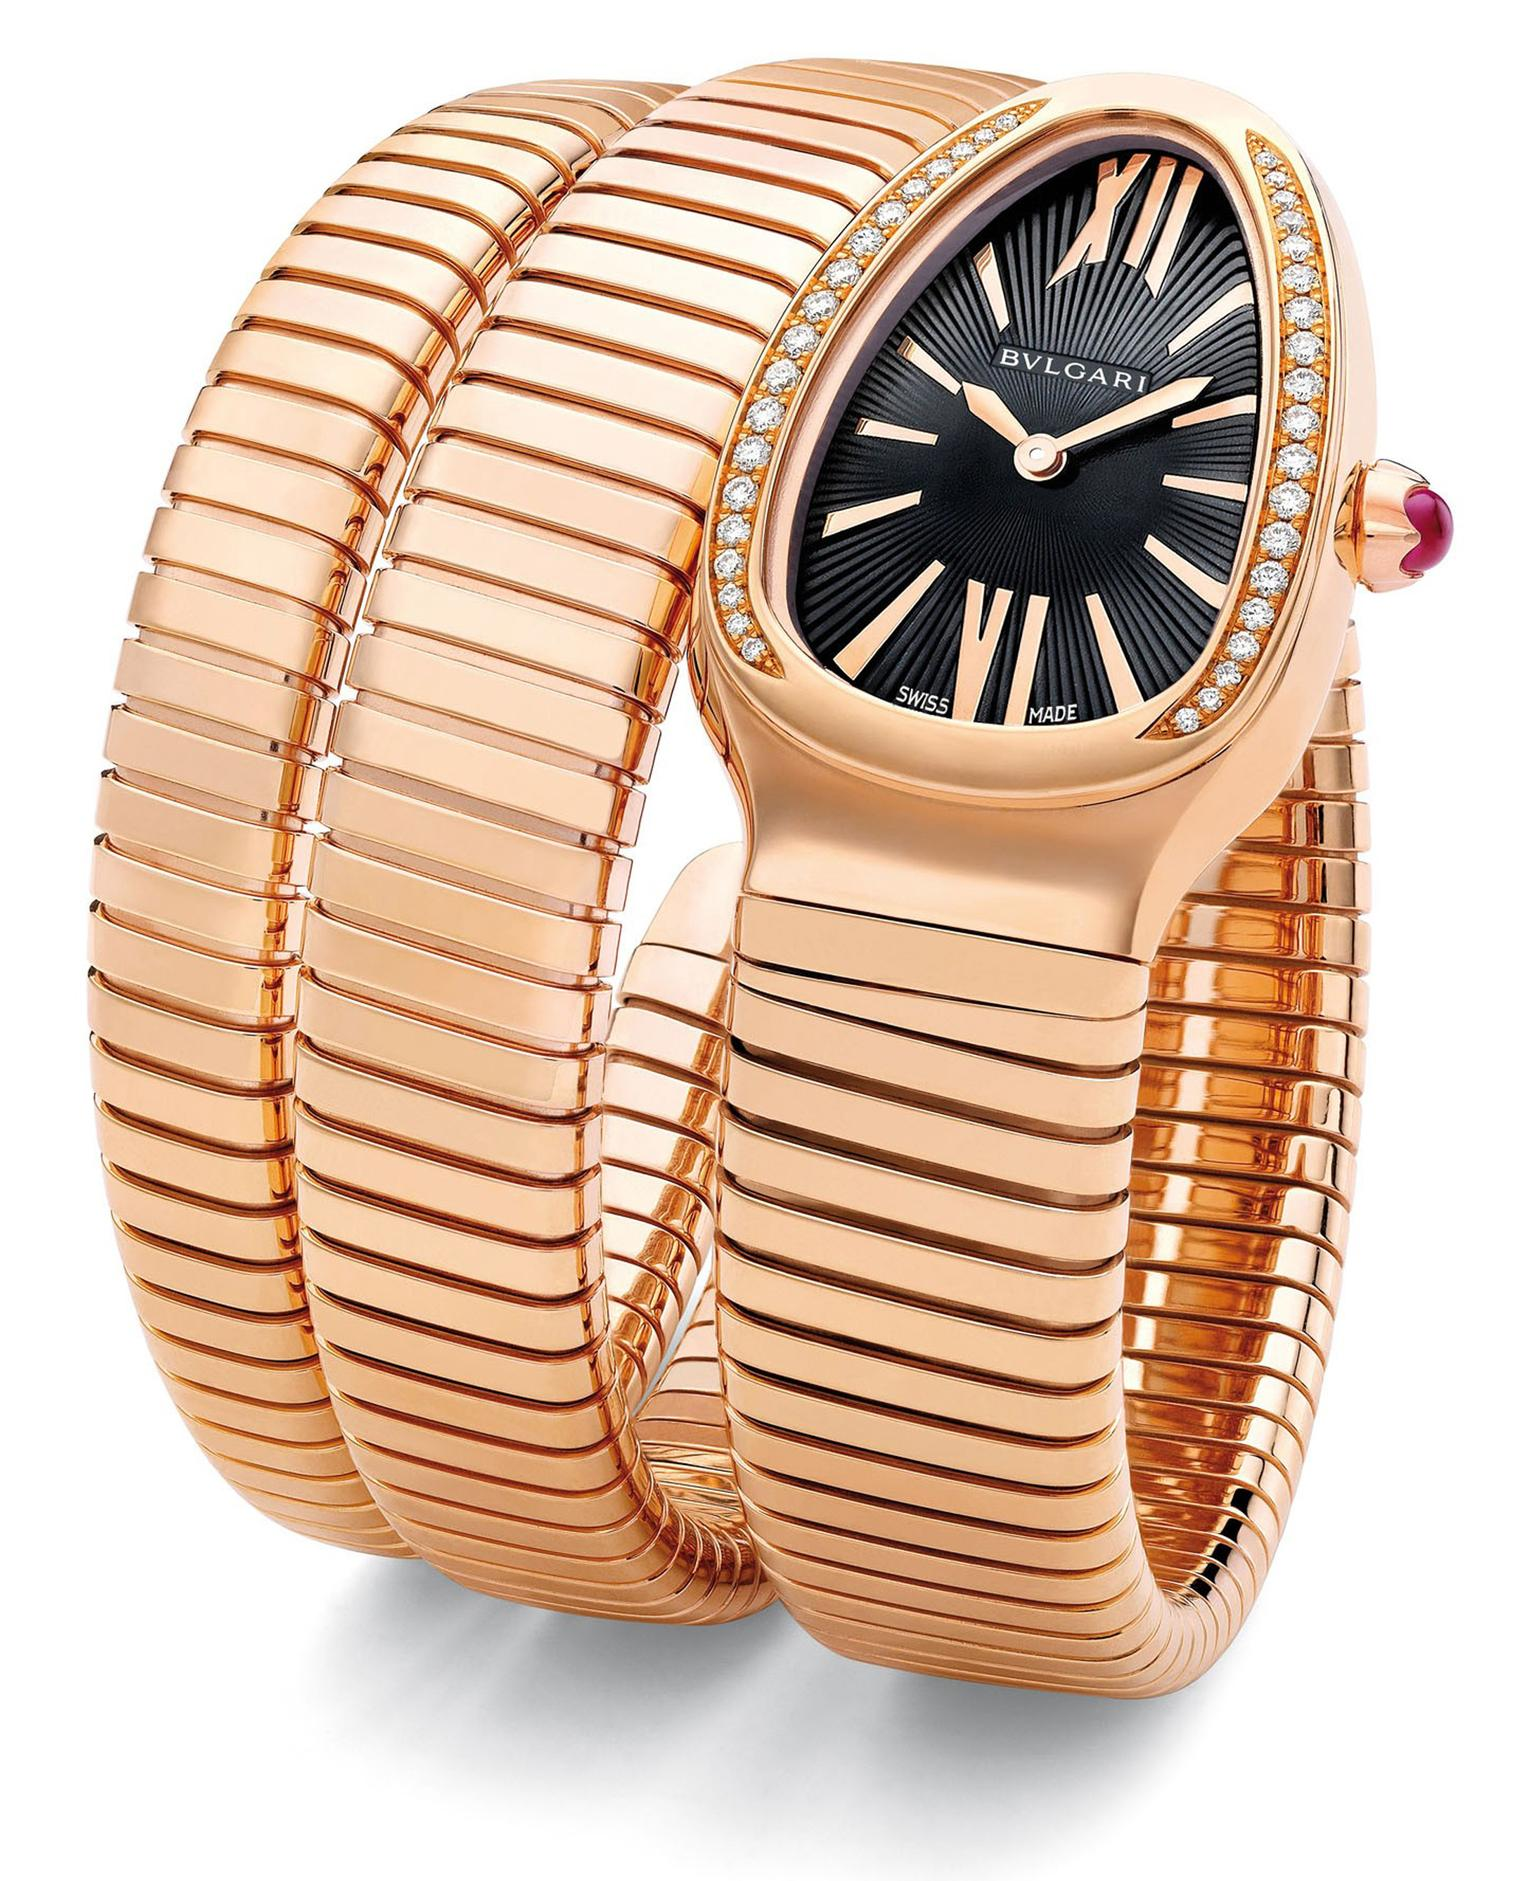 Bulgari Serpenti in pink gold